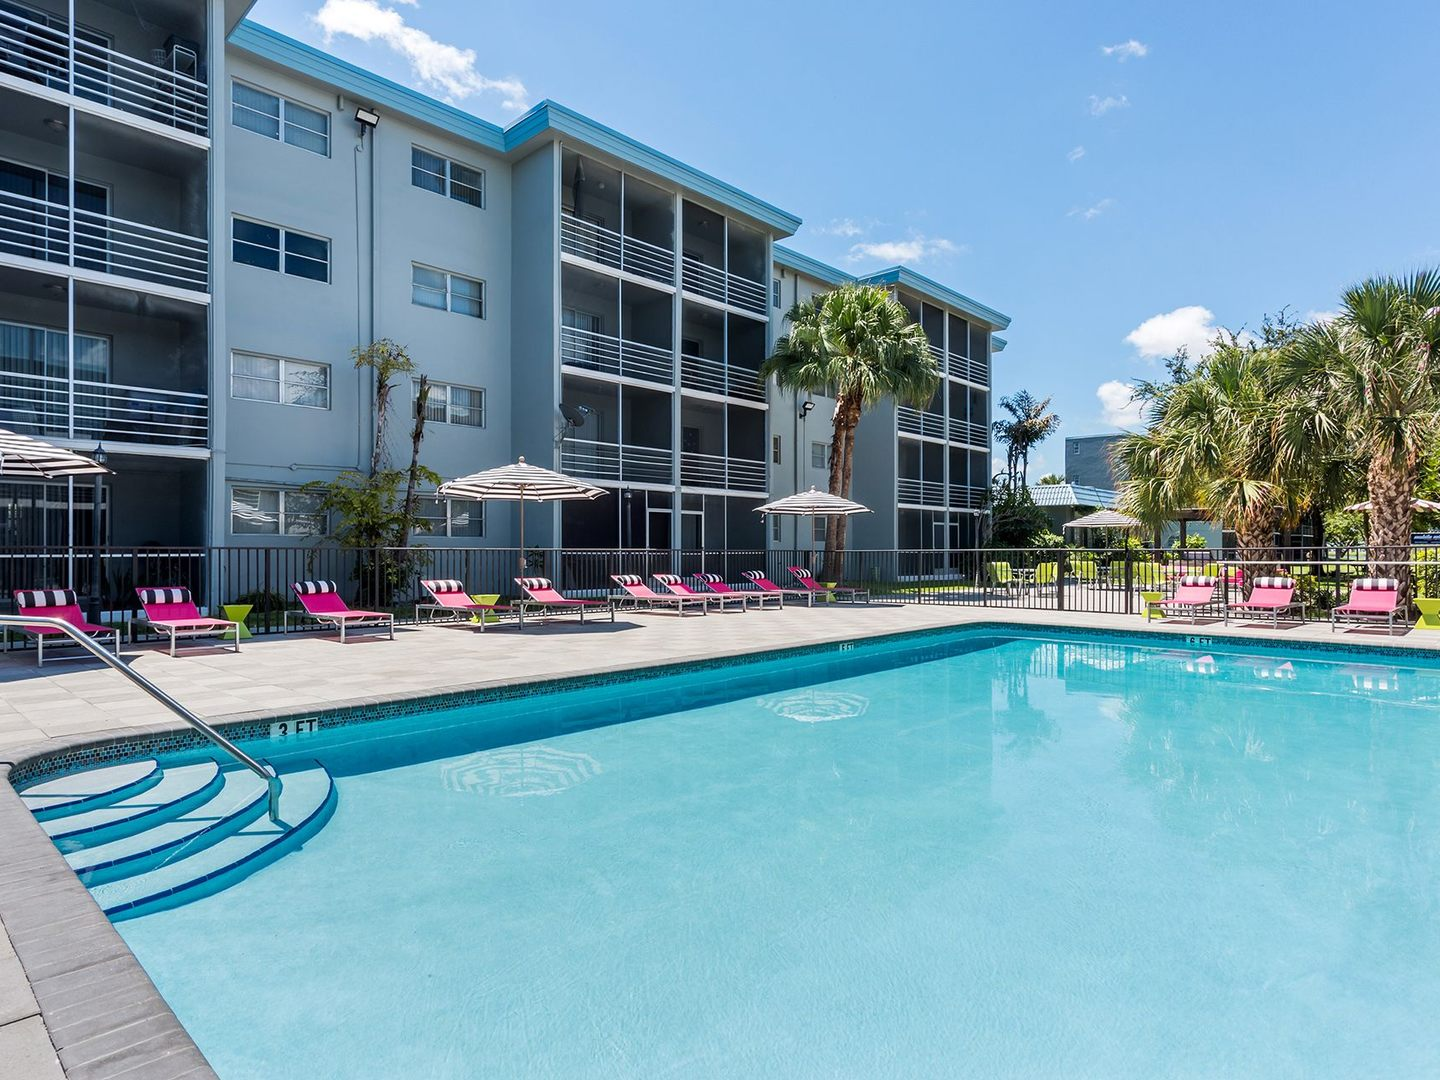 Swimming pool with lounge chairs and view of apartment building